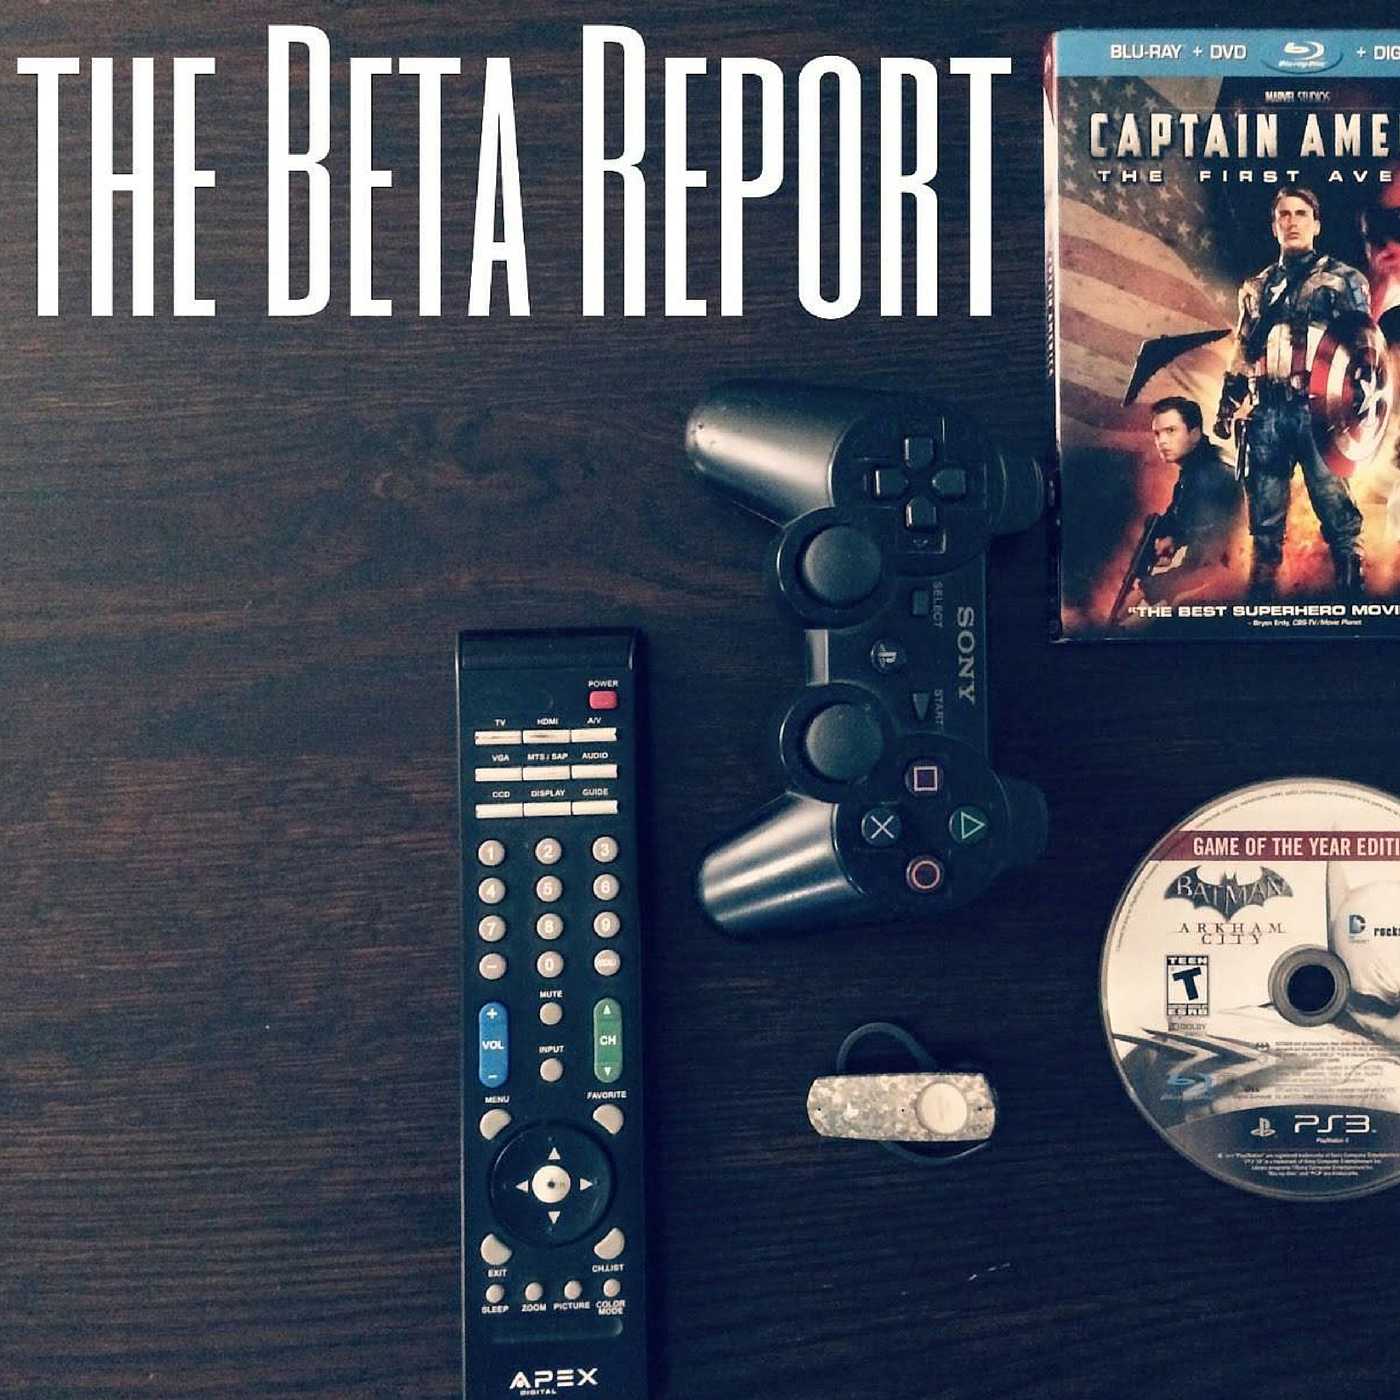 The Beta Report - THE BETA REPORT